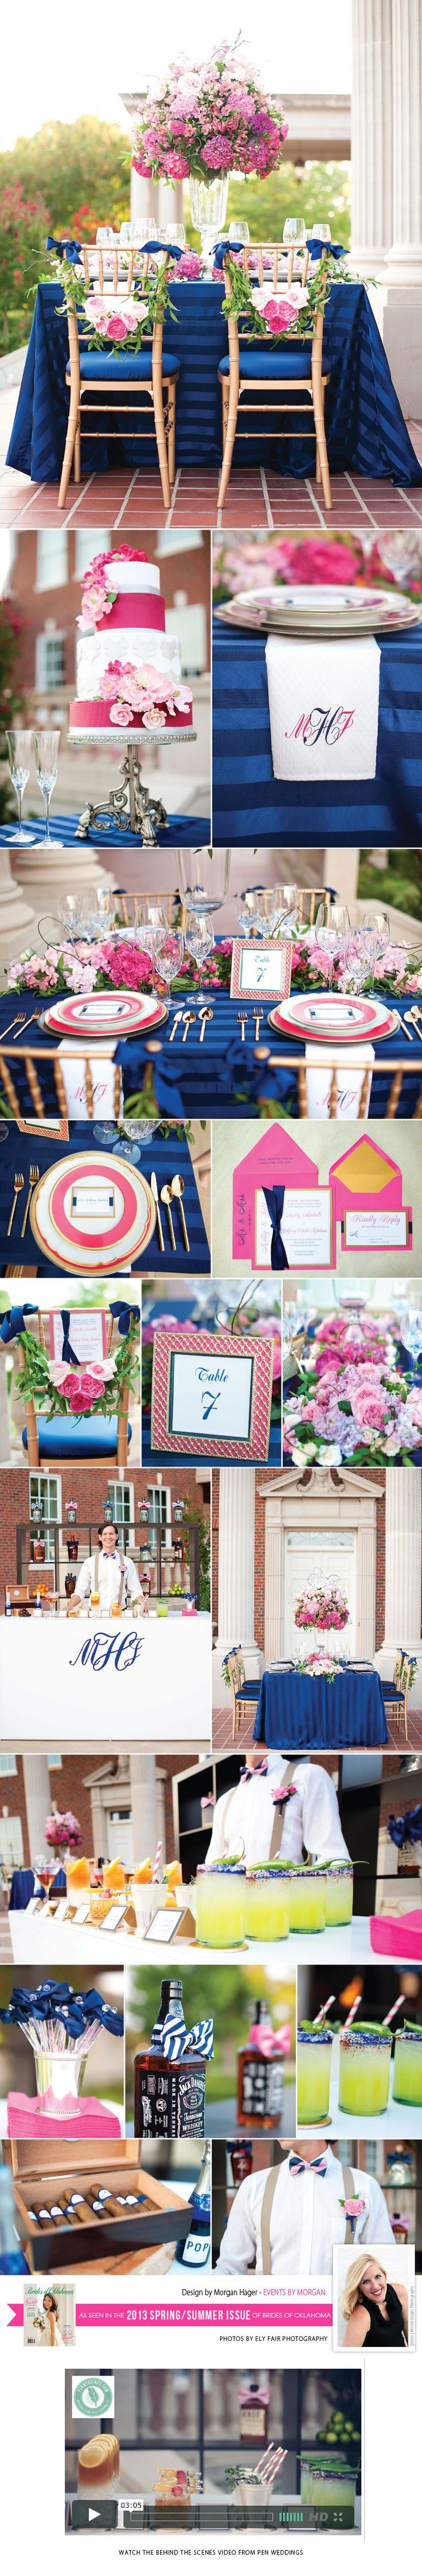 1312 best wedding ideas♡☆ images on Pinterest